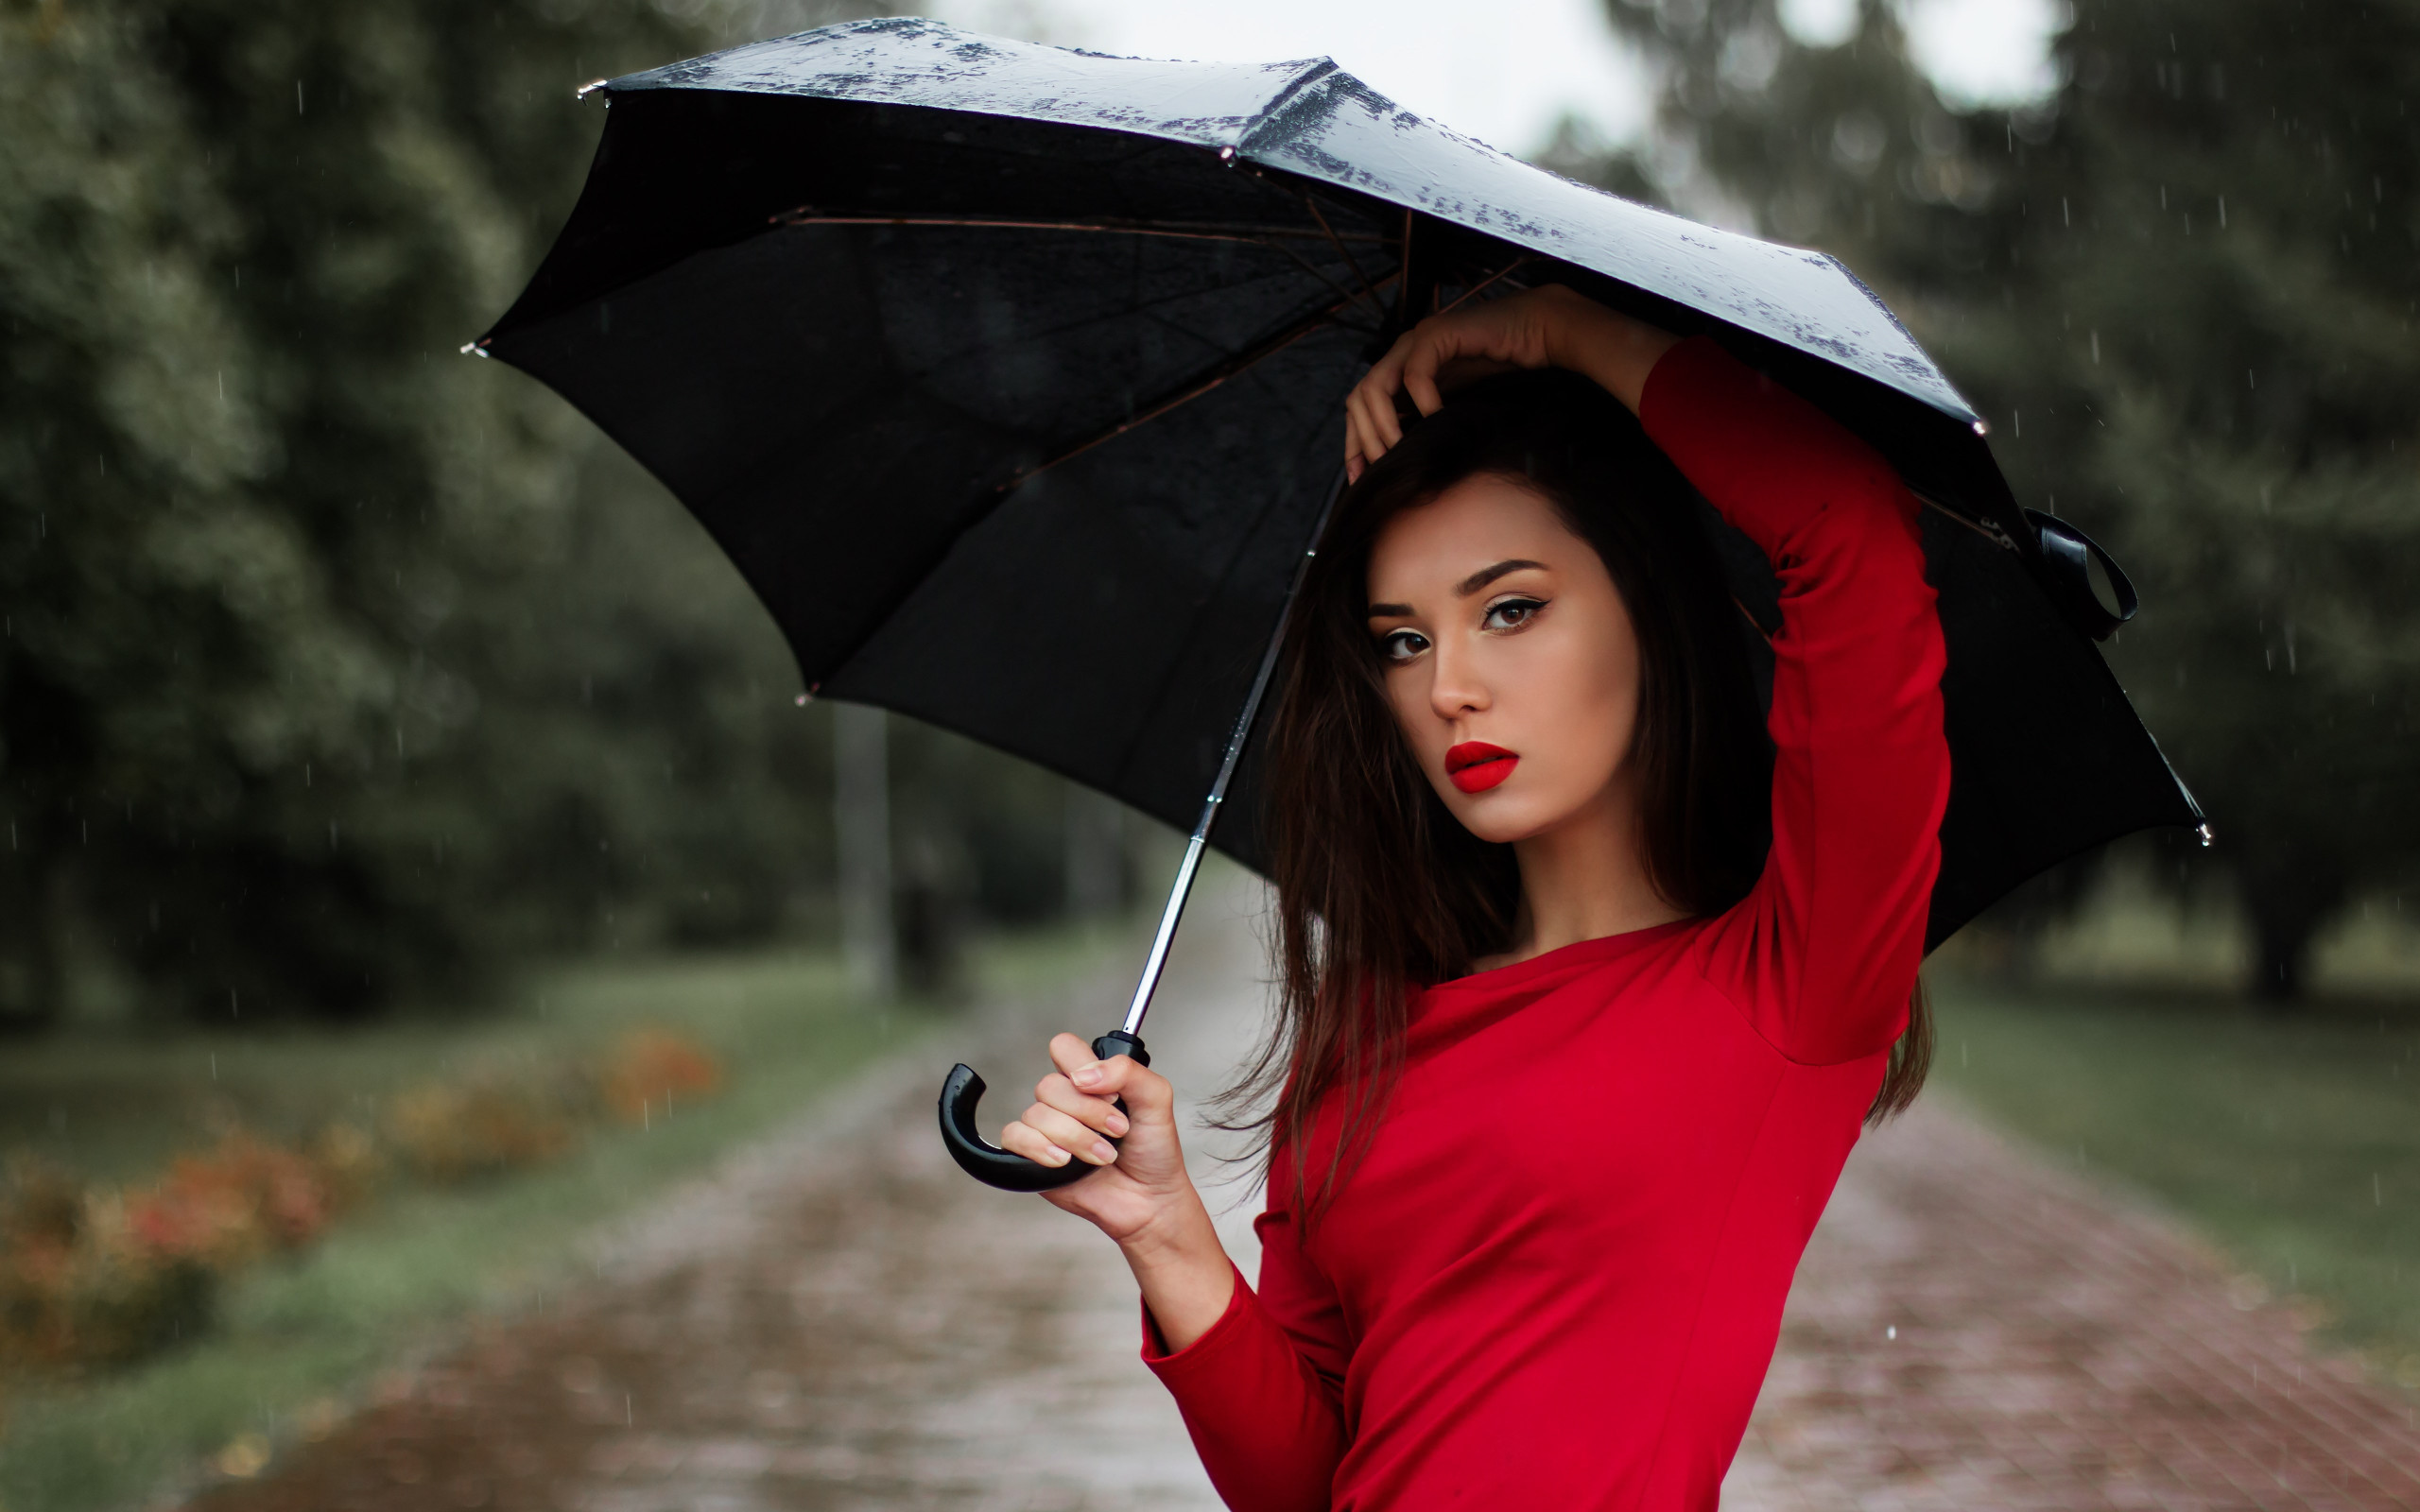 Beauitful girl in a rainy day | 2560x1600 wallpaper